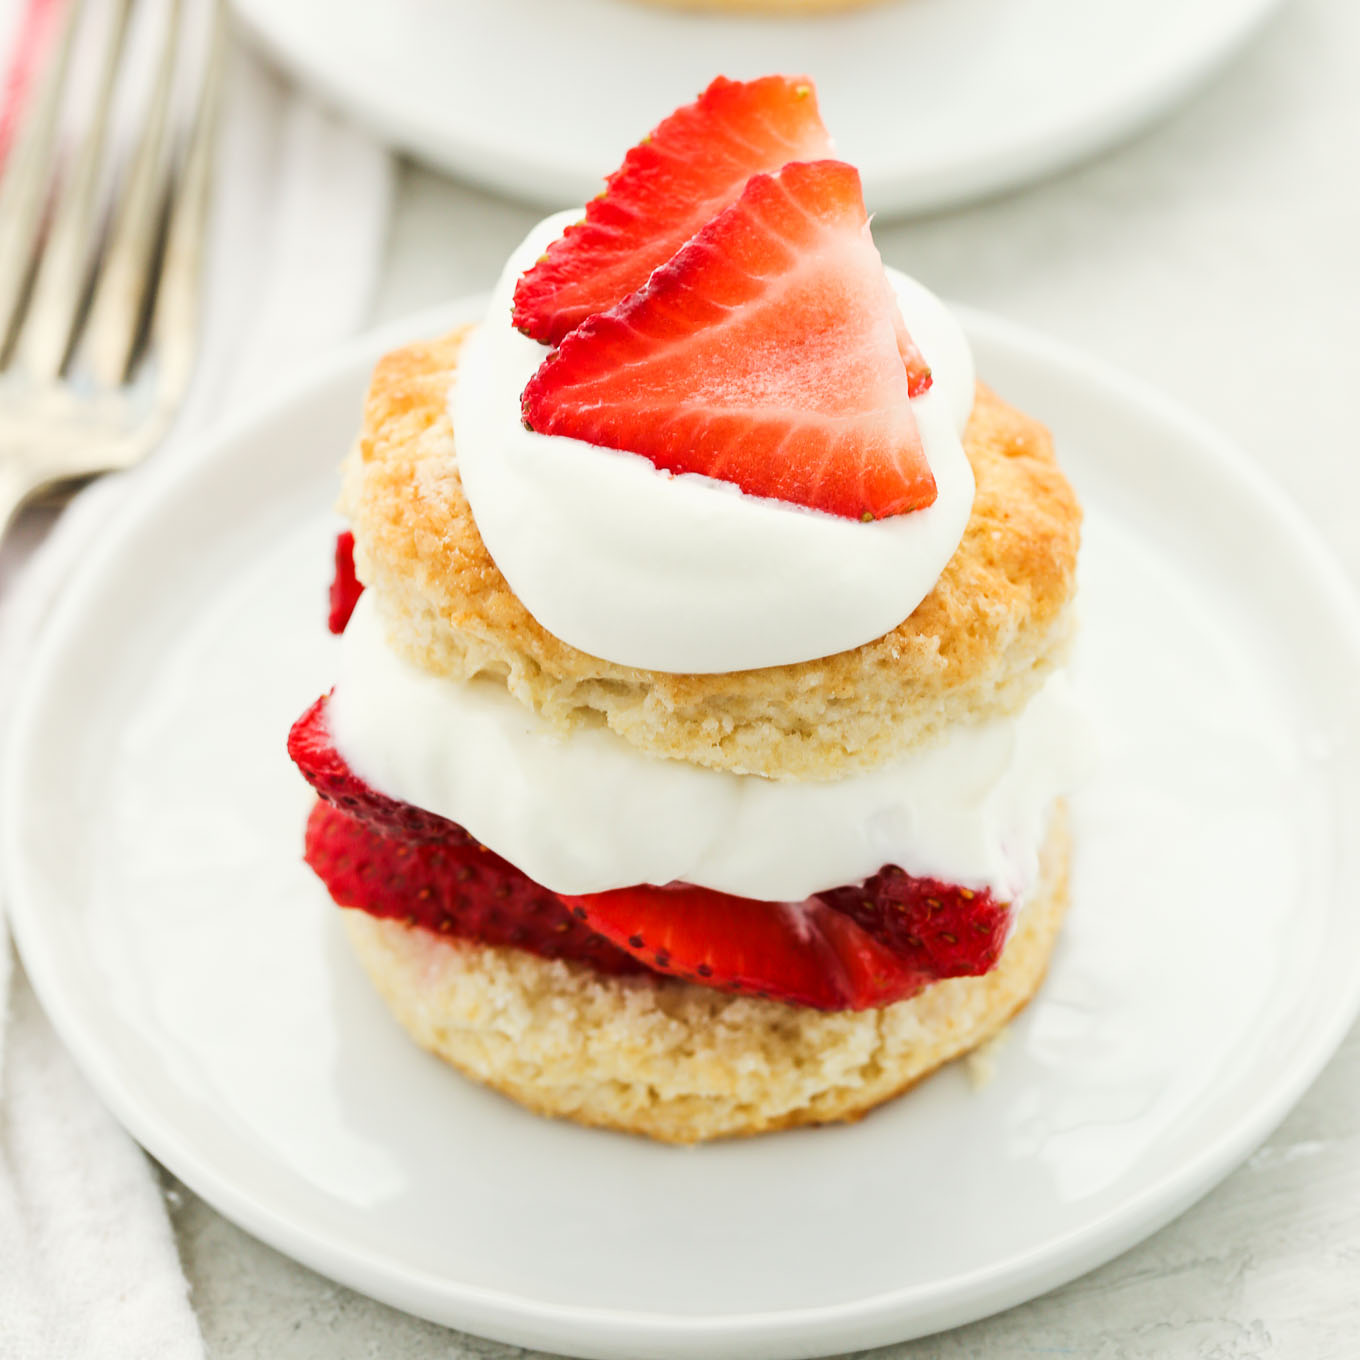 Homemade Strawberry Shortcake Live Well Bake Often